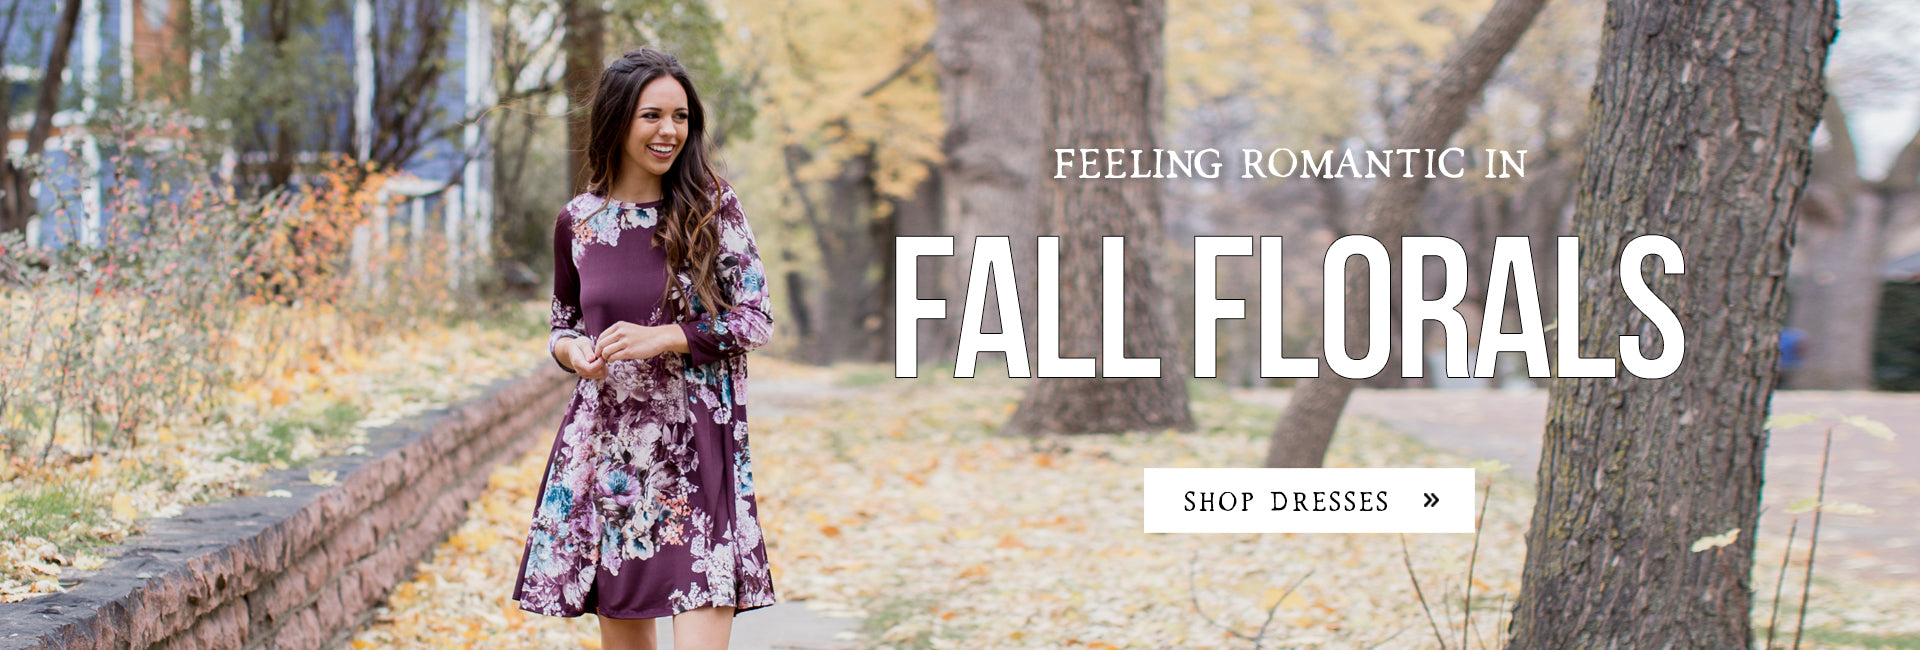 Feeling Romantic in Fall Florals - Woman in floral dress